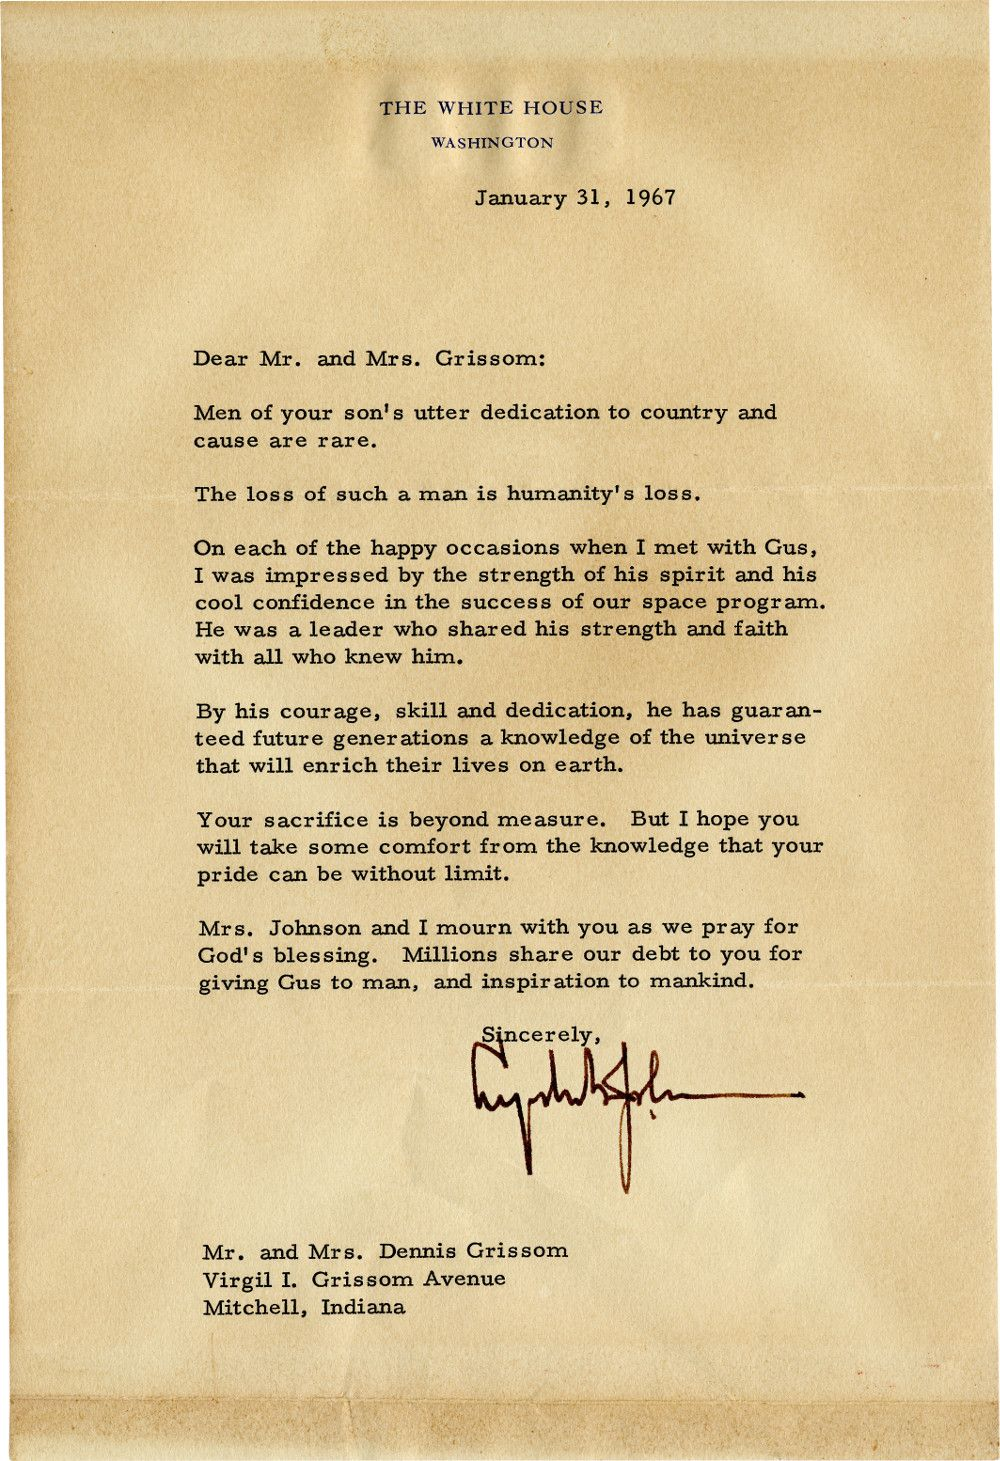 Lyndon B. Johnson Writes to the Parents of Astronaut Gus Grissom, Killed in the Apollo I Fire